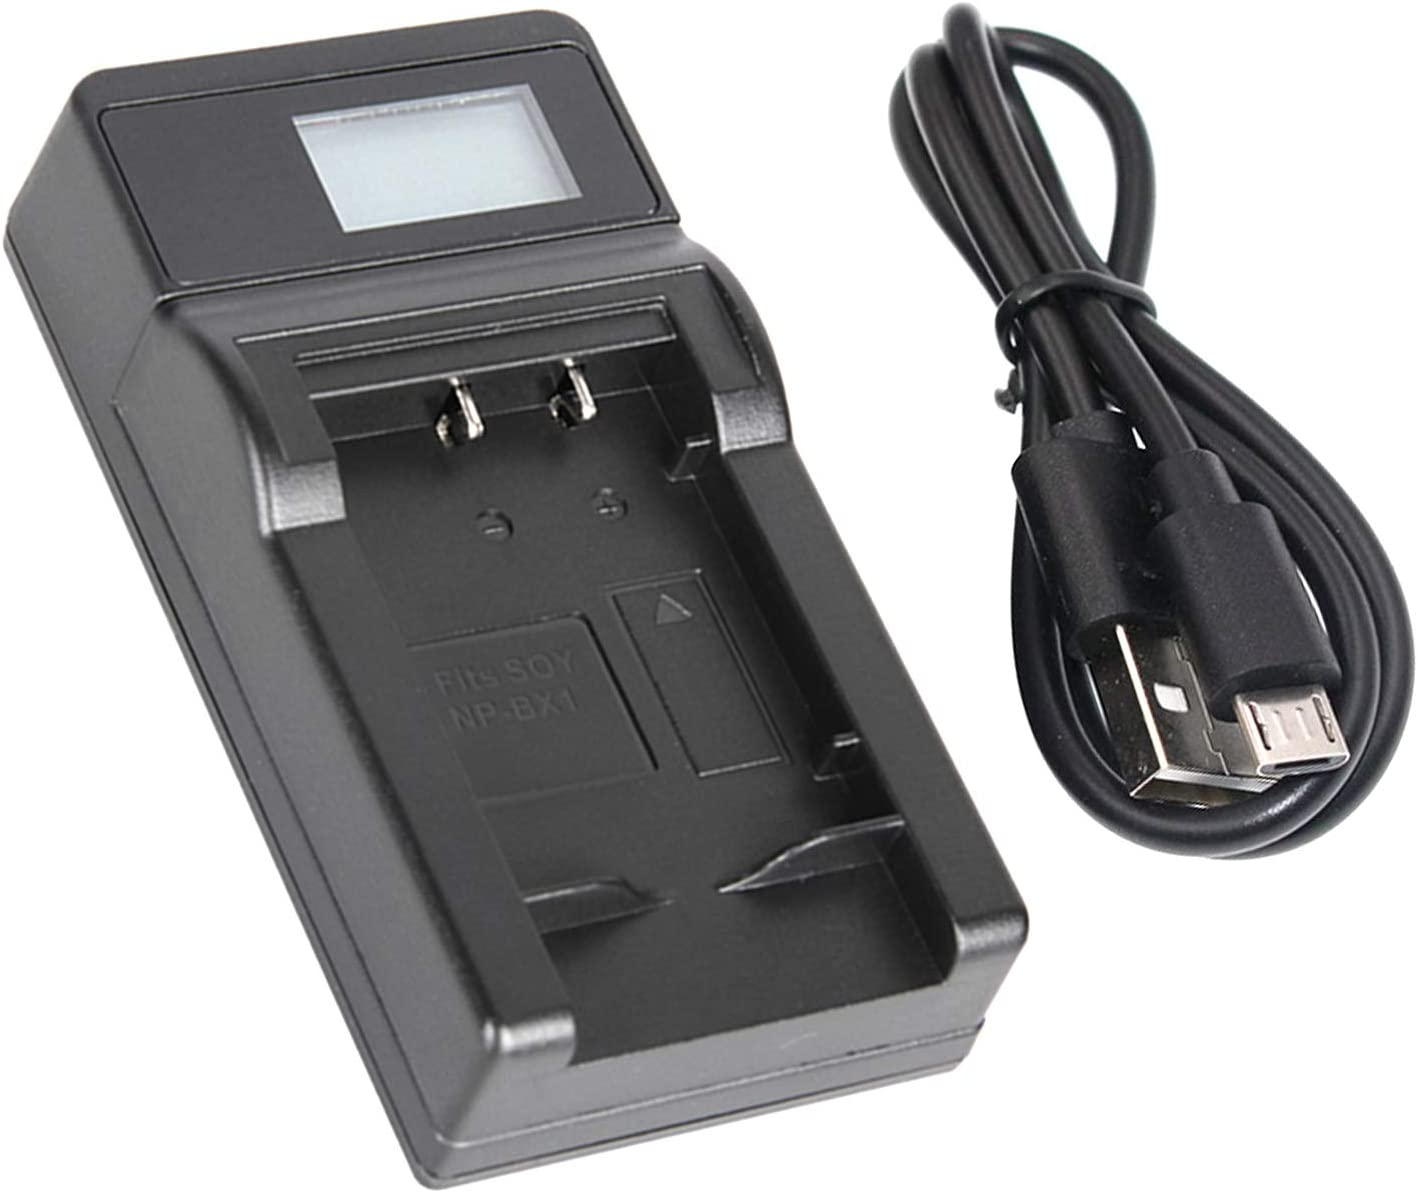 GZ-HM340BUS HD Everio Flash Memory Camcorder LCD USB Battery Charger for JVC Everio GZ-HM340 GZ-HM340BU